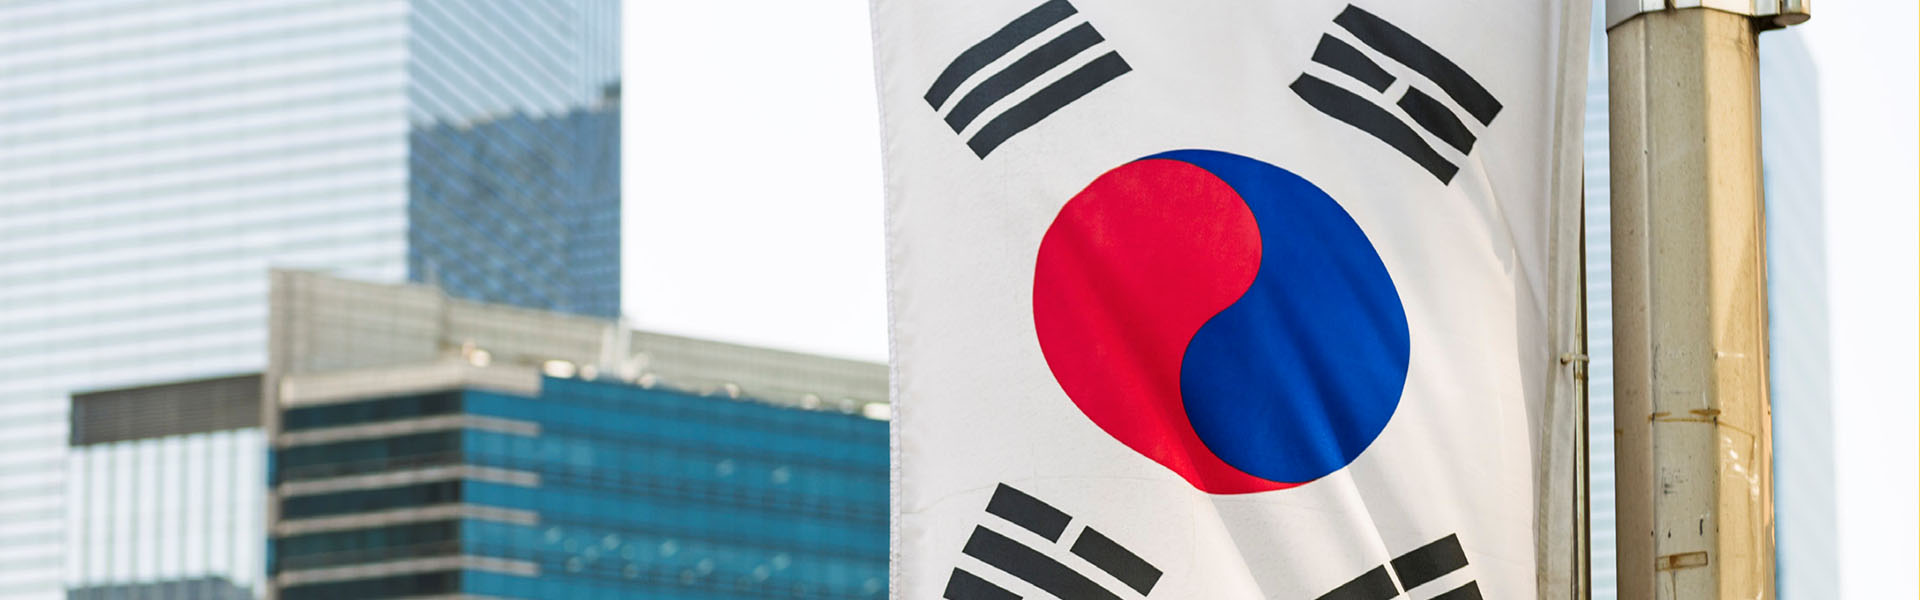 doing business in south korea world business culture